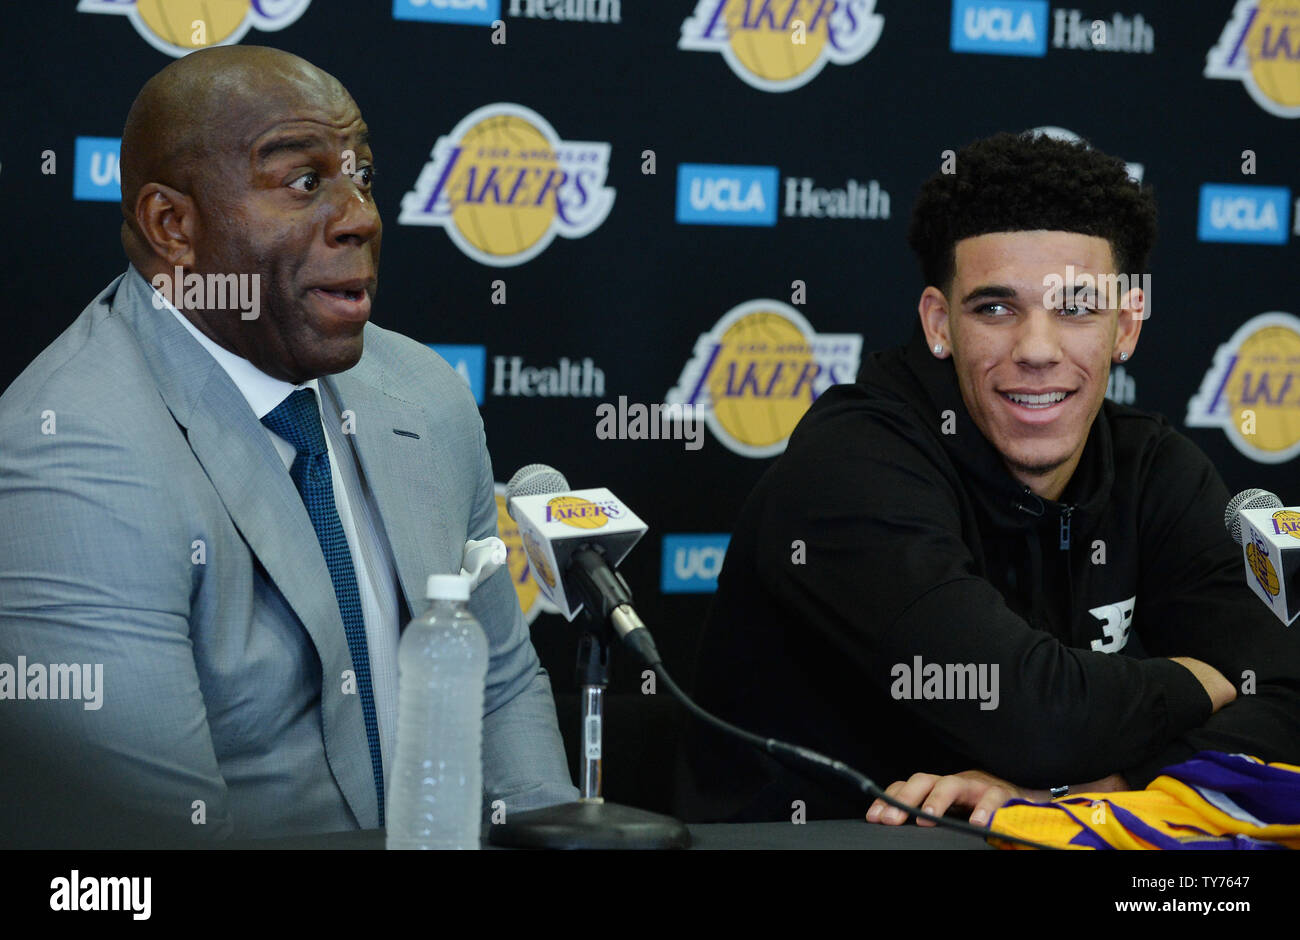 lonzo Stock Photos & ´lonzo Stock Images - Page 3 - Alamy